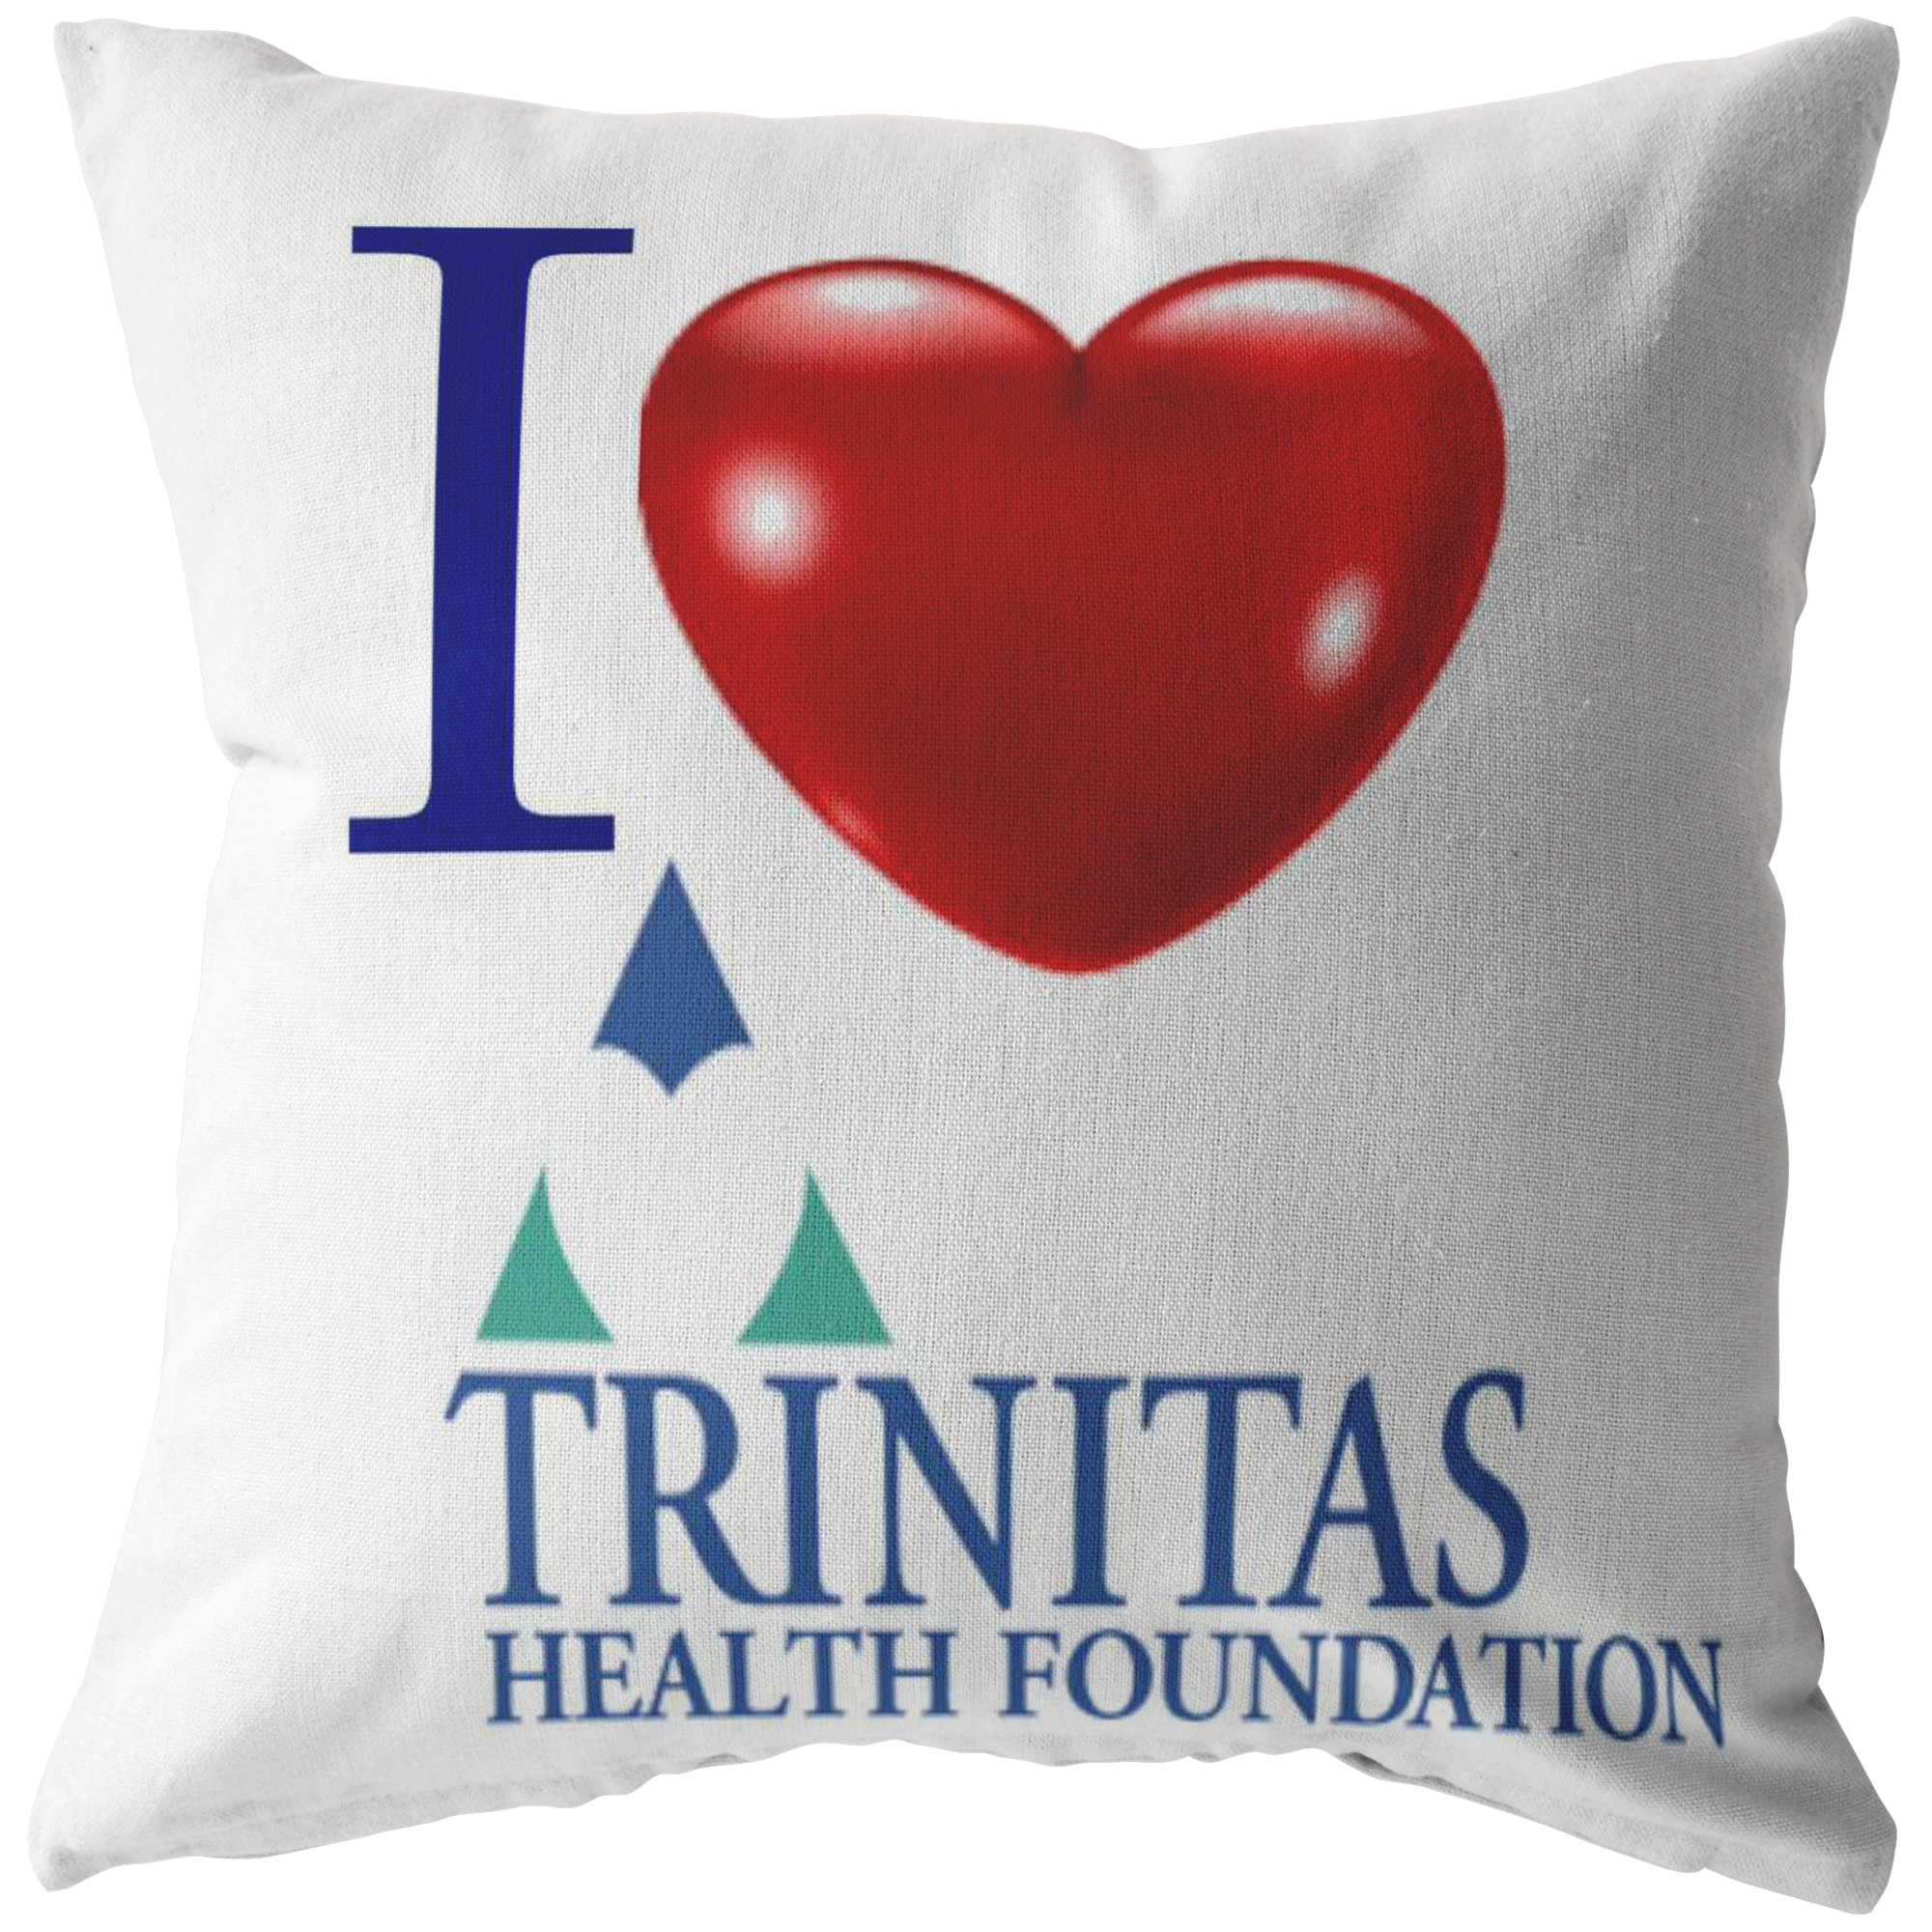 I Love Trinitas Health Foundation (1144)